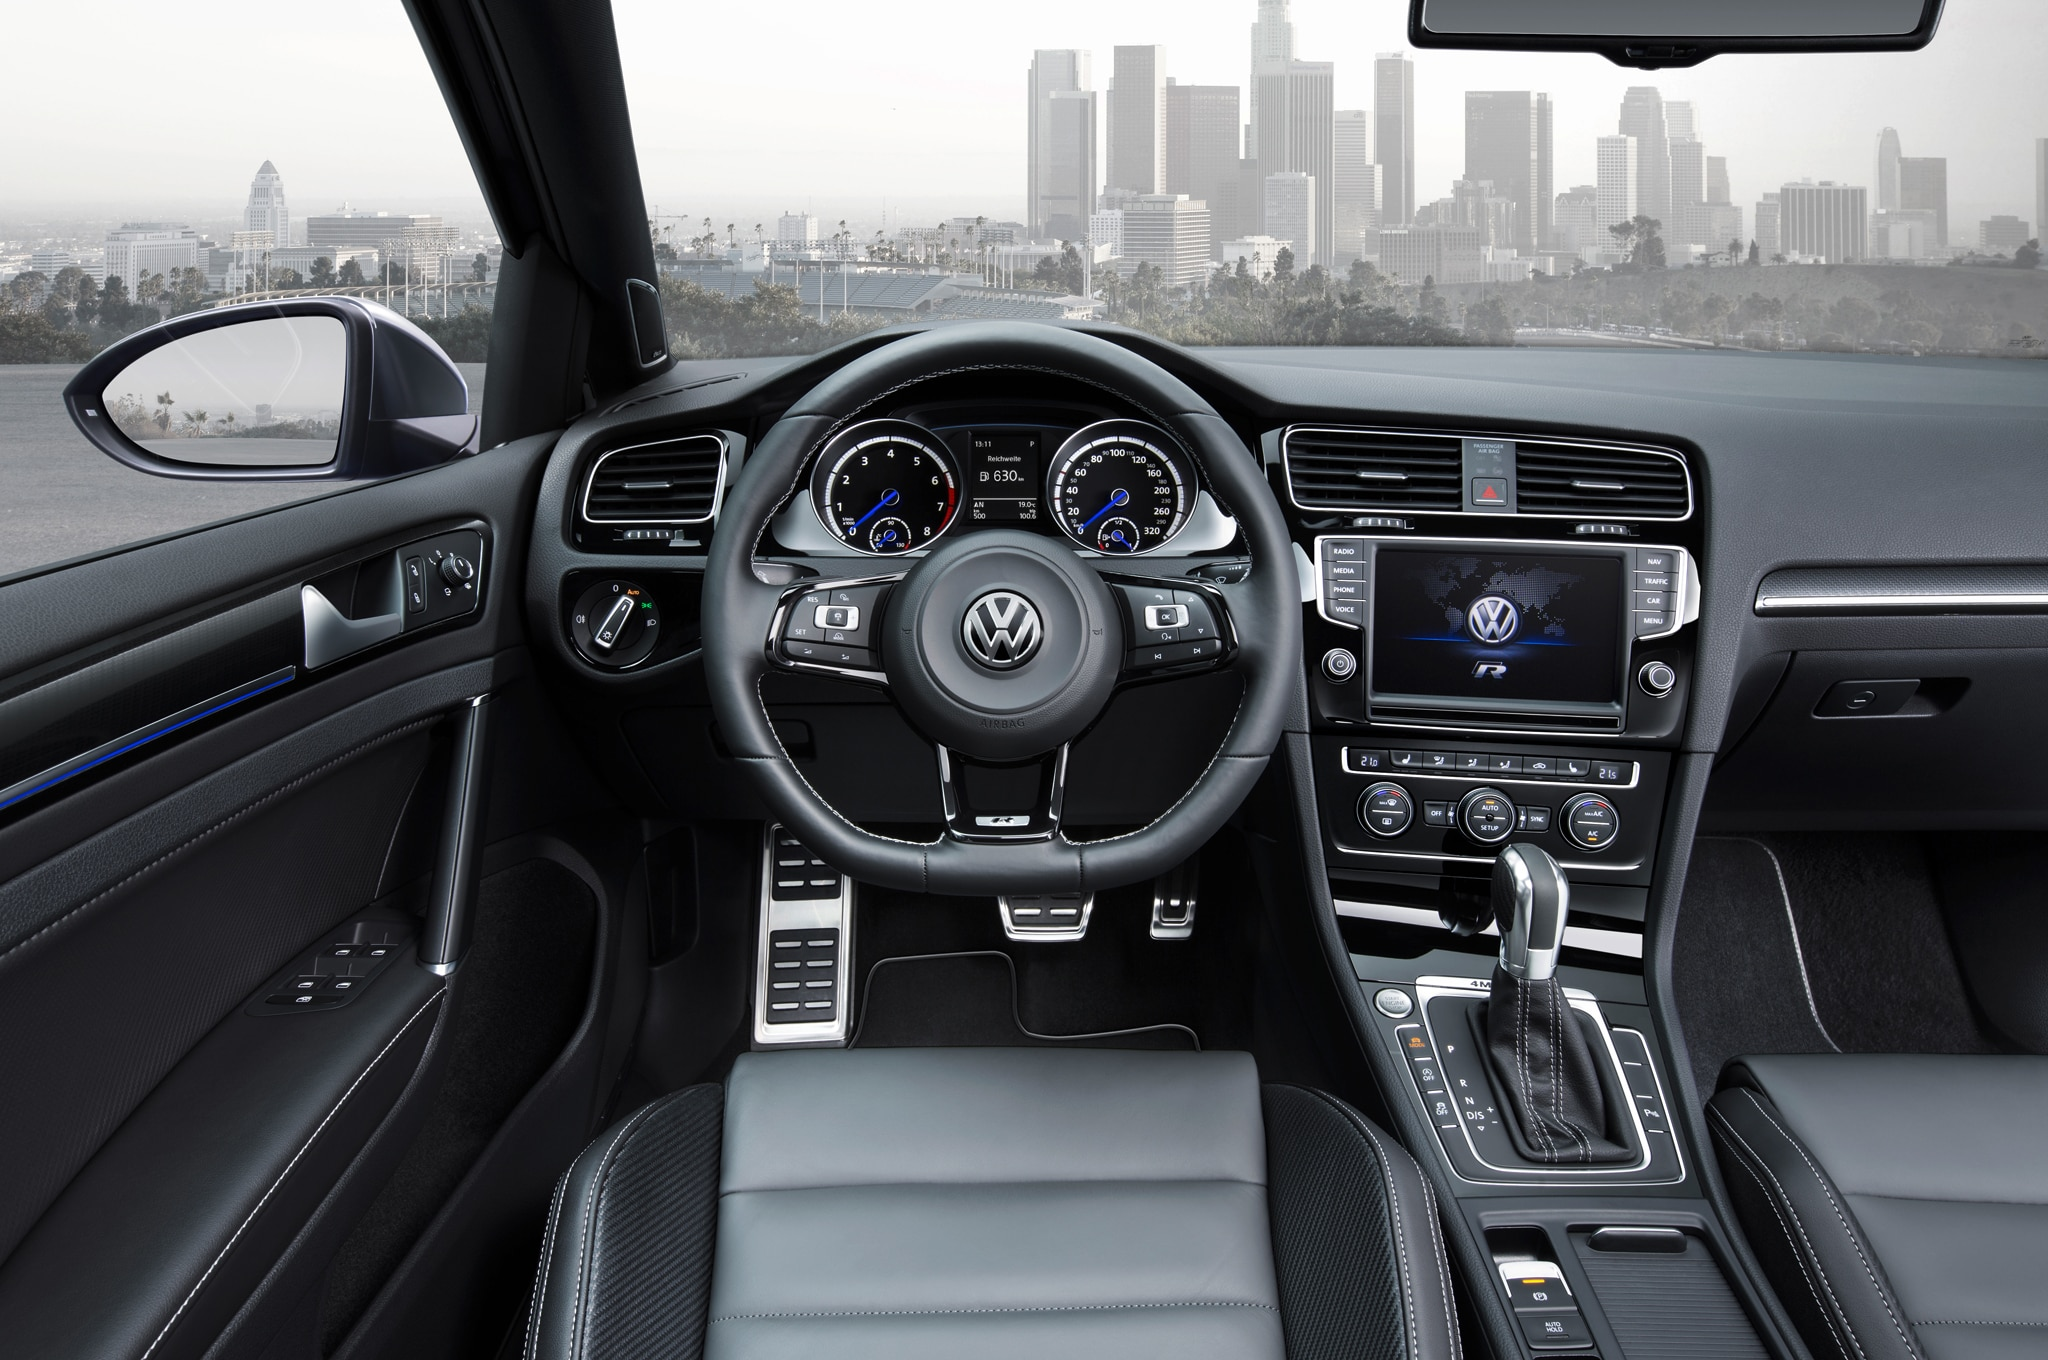 Volkswagen Teases U.S. with Golf R Wagon | {Auto cockpit vw 92}